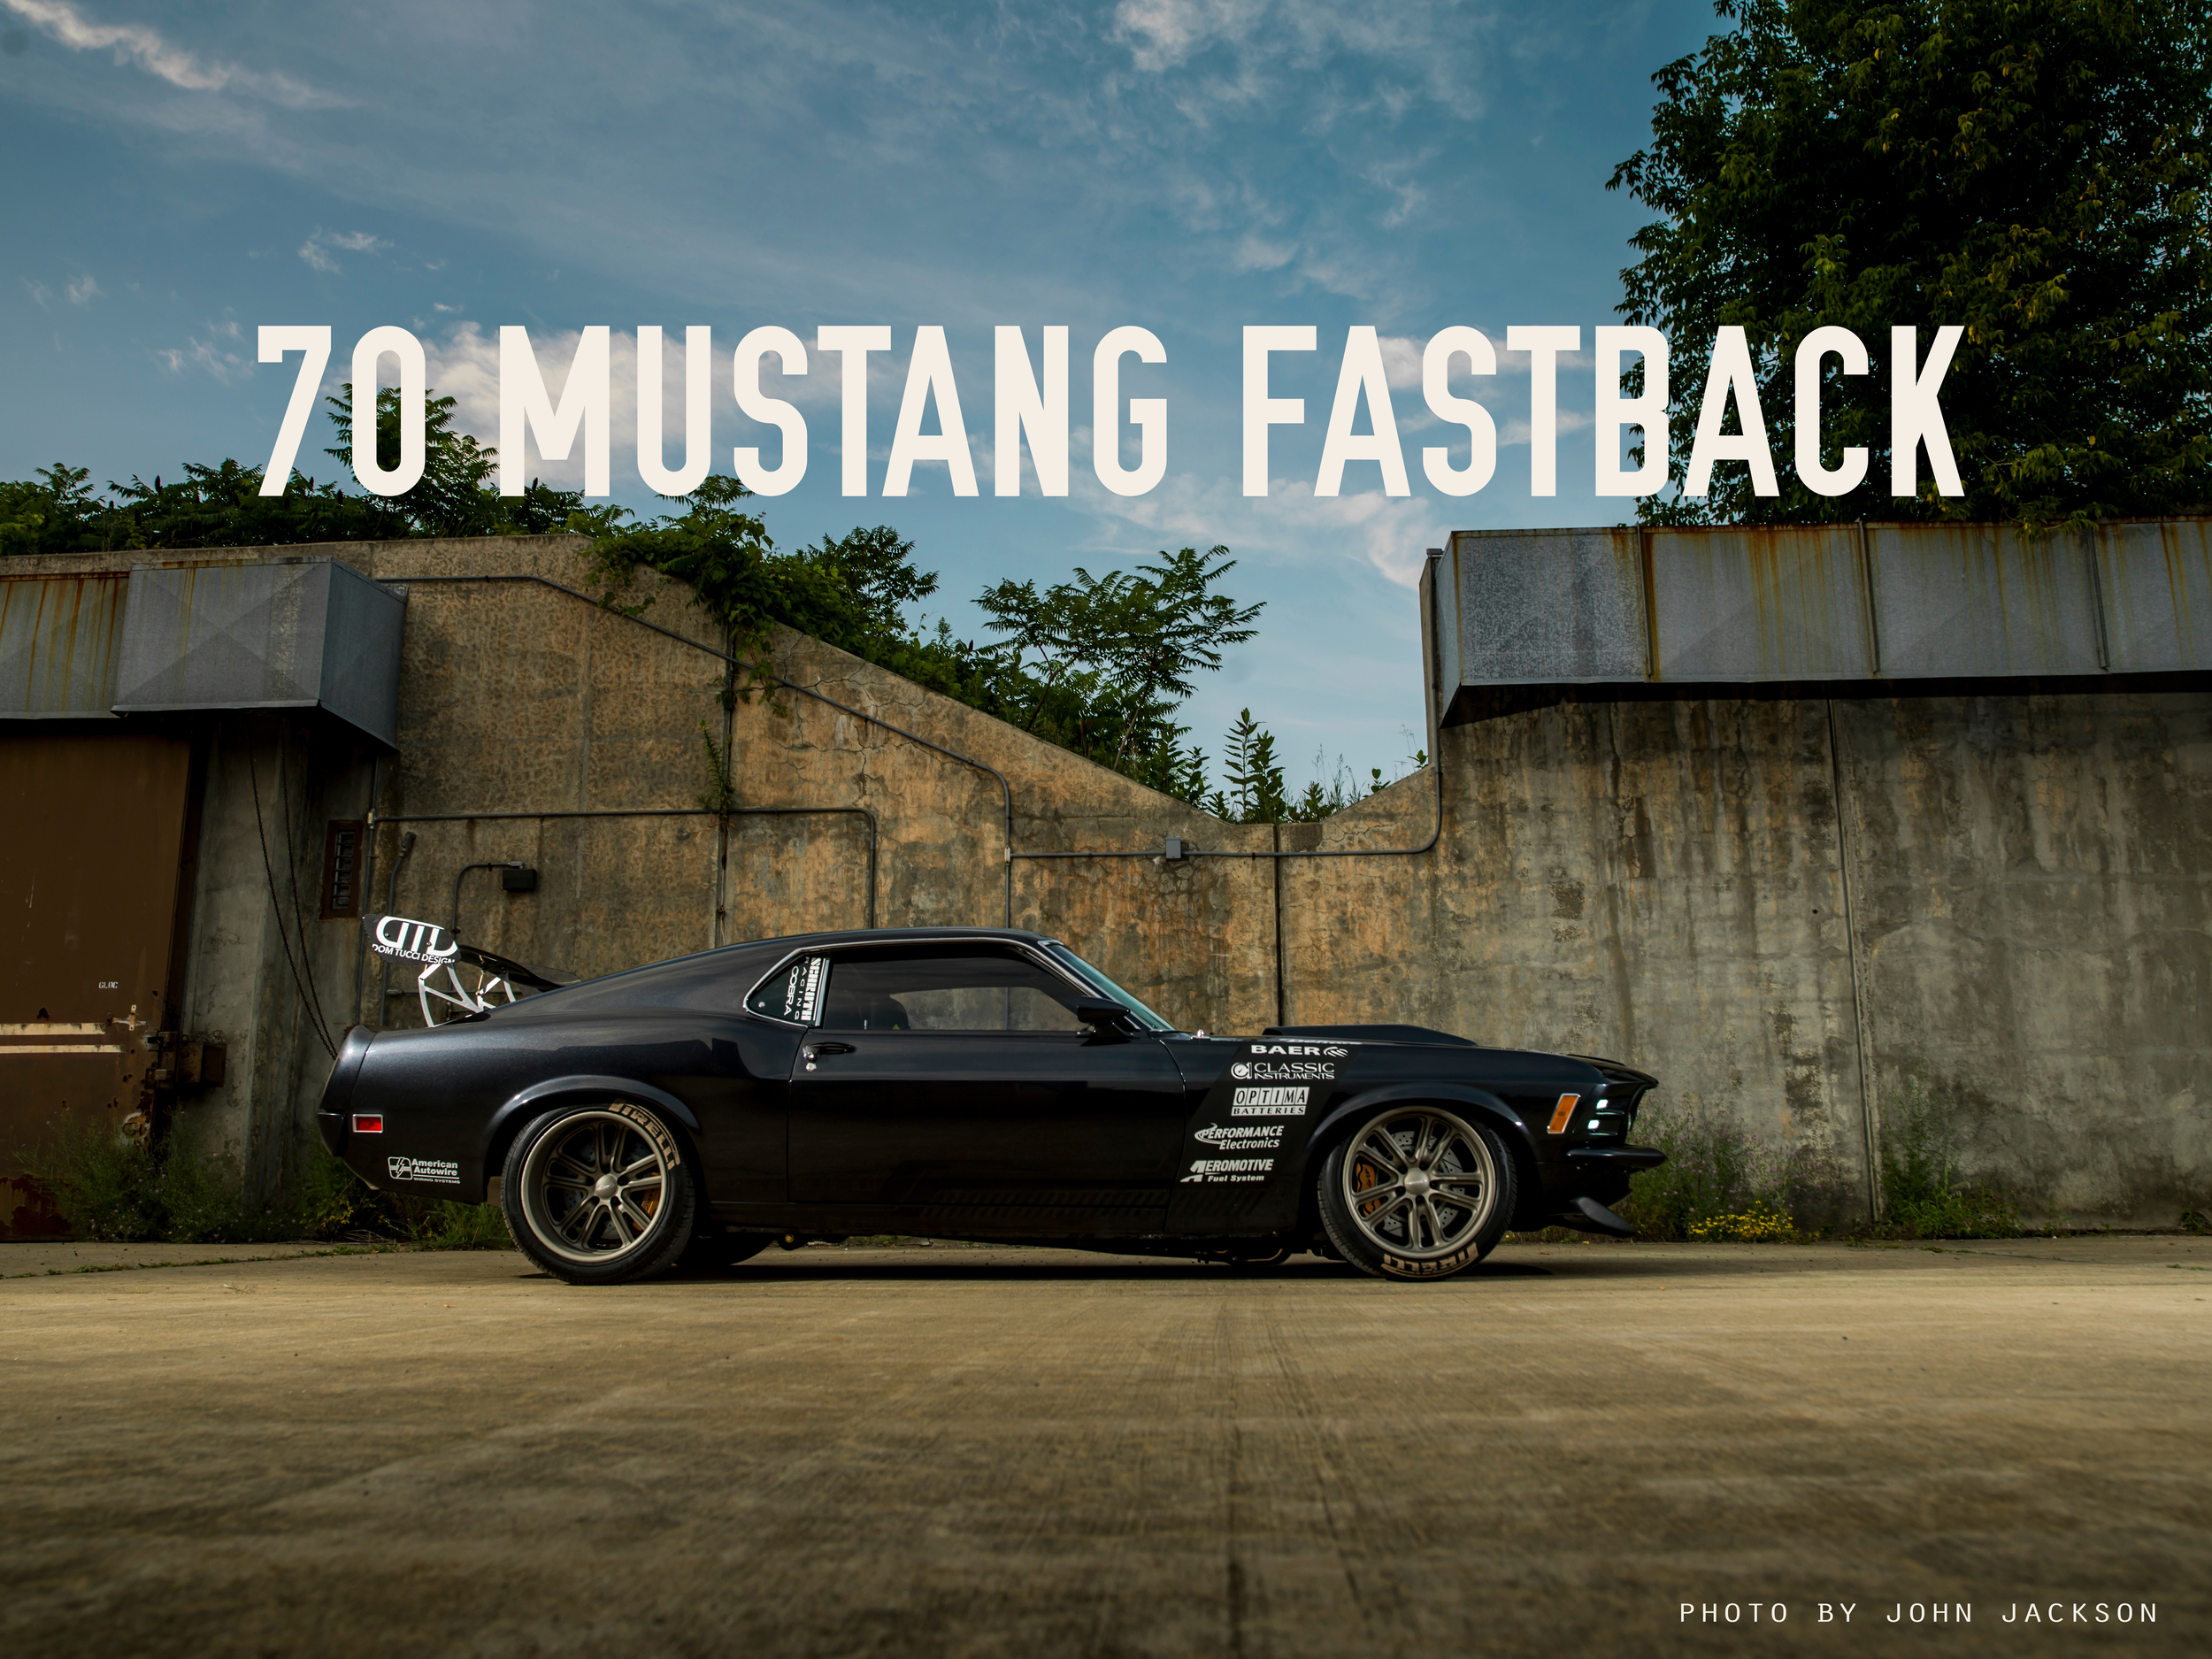 Mustang Cover Photo.jpg